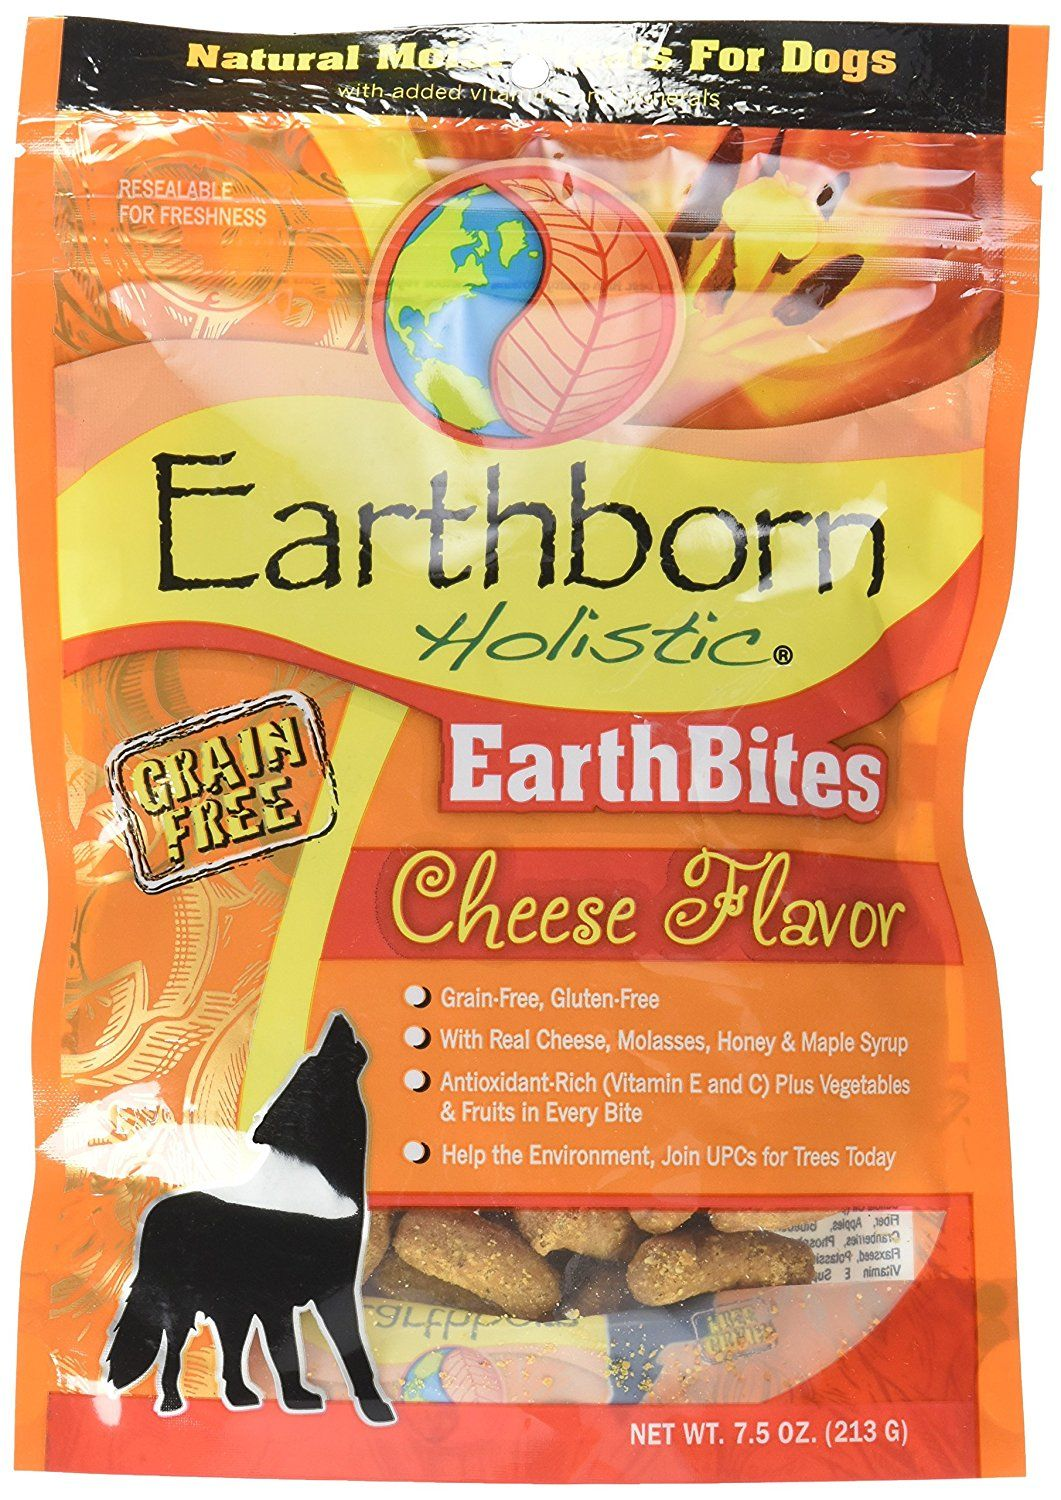 Earthborn Holistic Earthbites Cheese Flavor, 7.5oz ** To